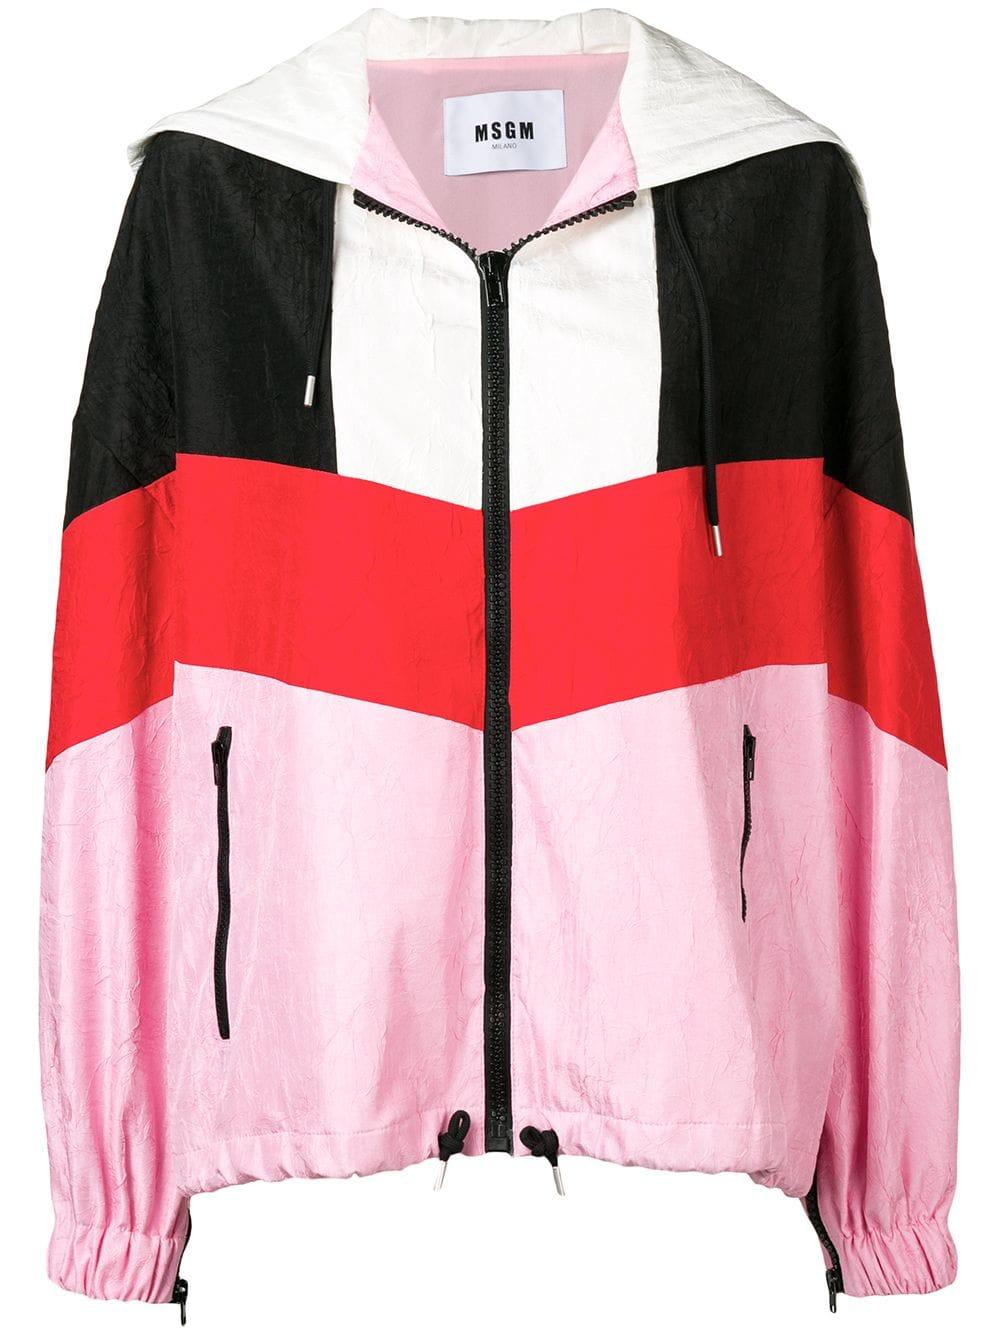 51f874589a95 Msgm Colour-Block Jacket - Farfetch In Pink